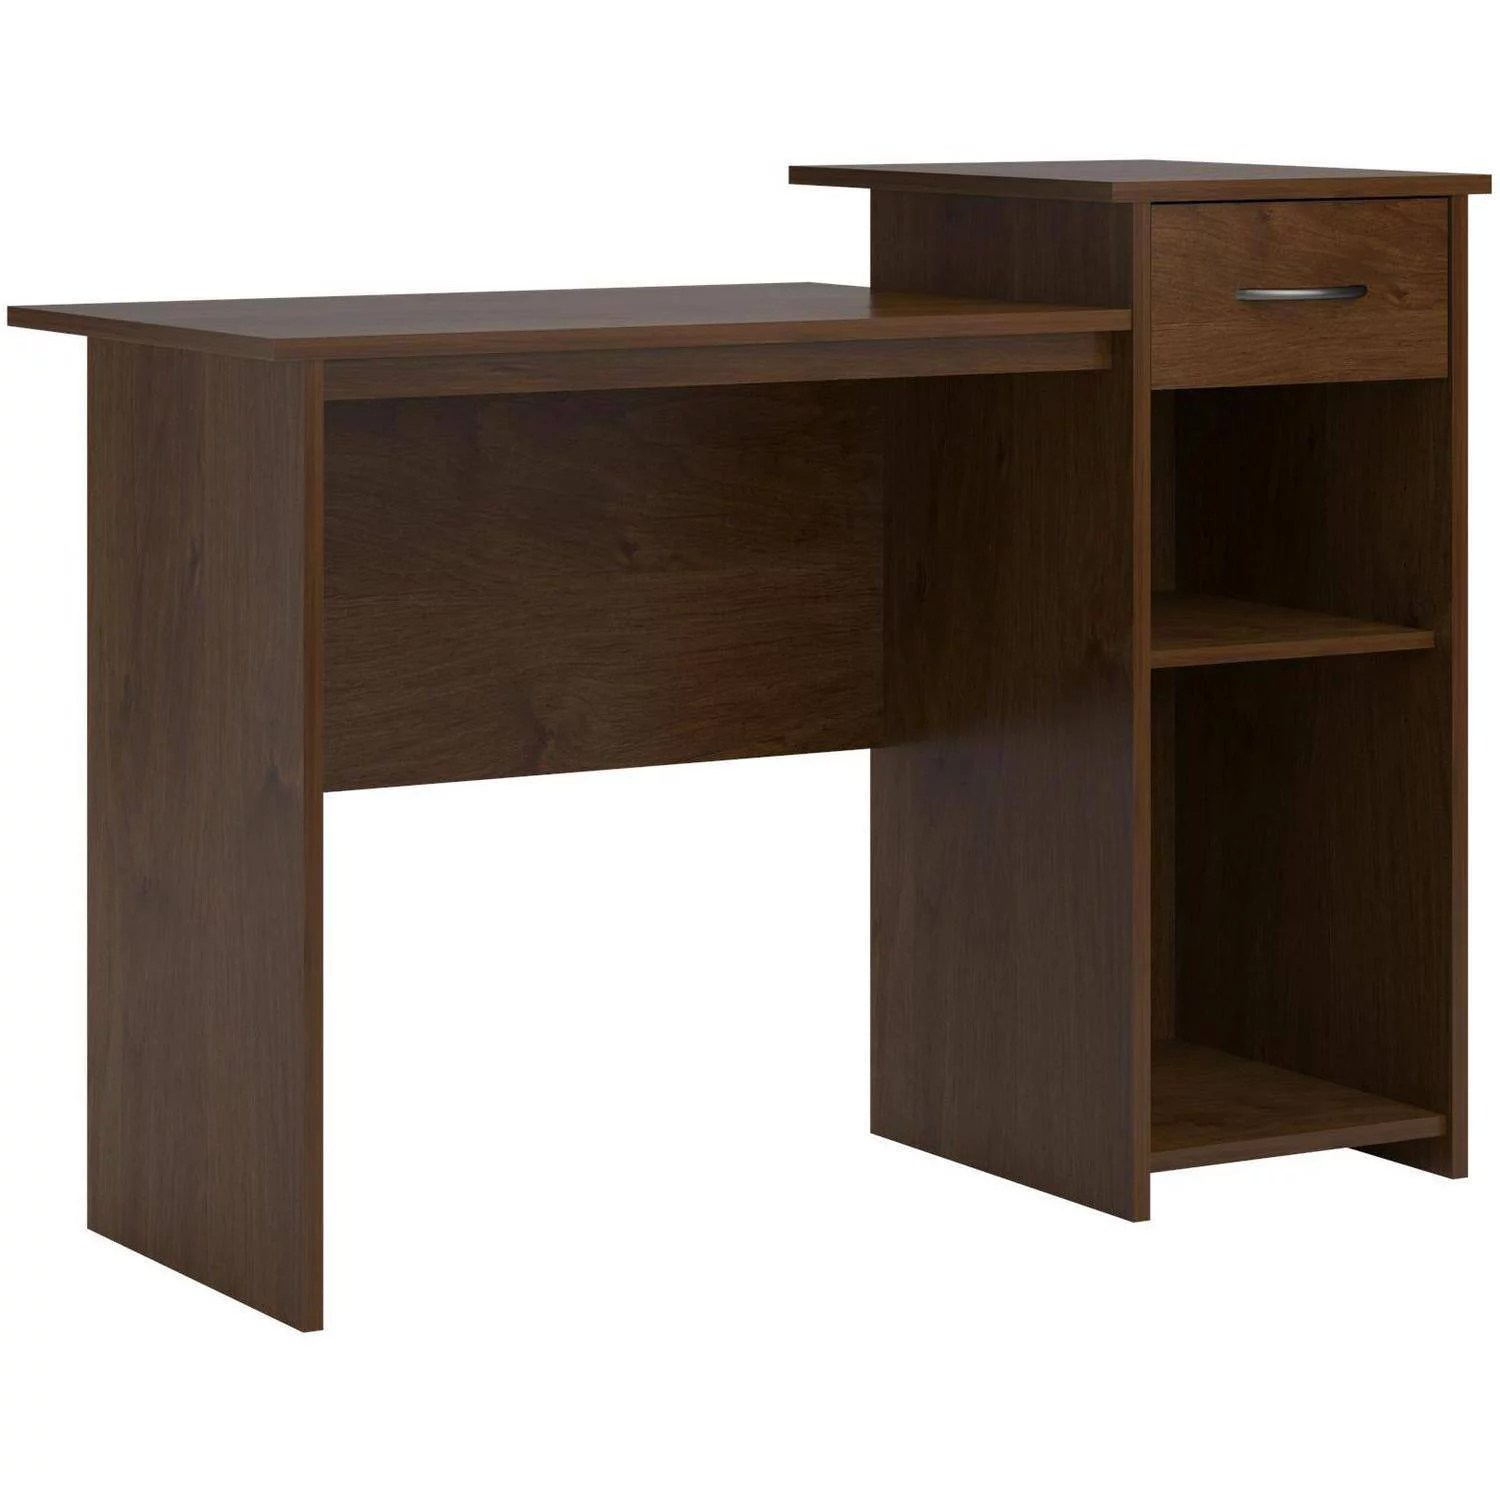 Mainstays Student Desk  Multiple Finishes   Walmart com